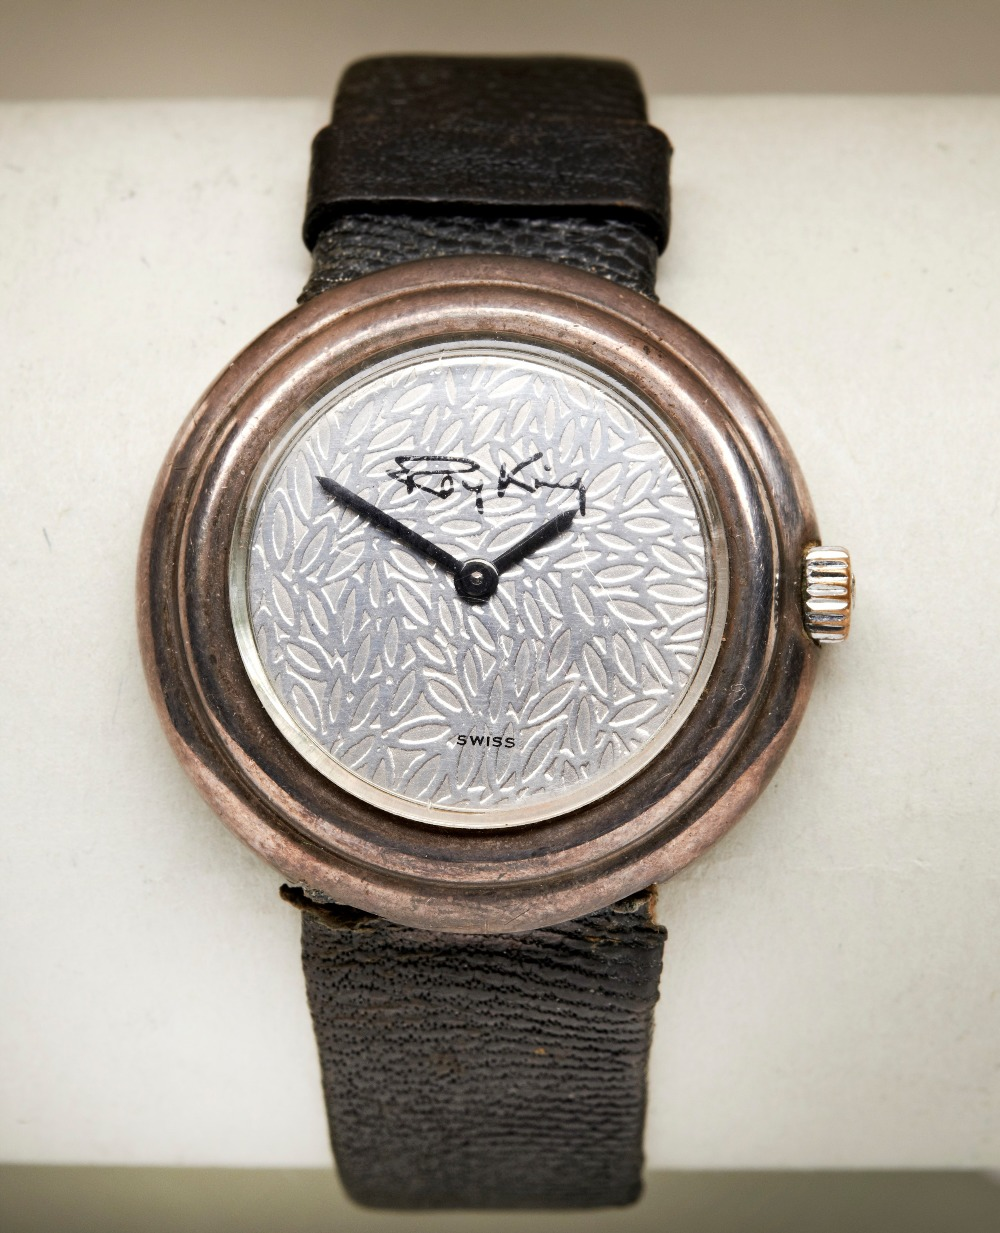 ROY KING SILVER MANUAL WIND UNISEX WRISTWATCH, the leaf effect dial with black signature the case